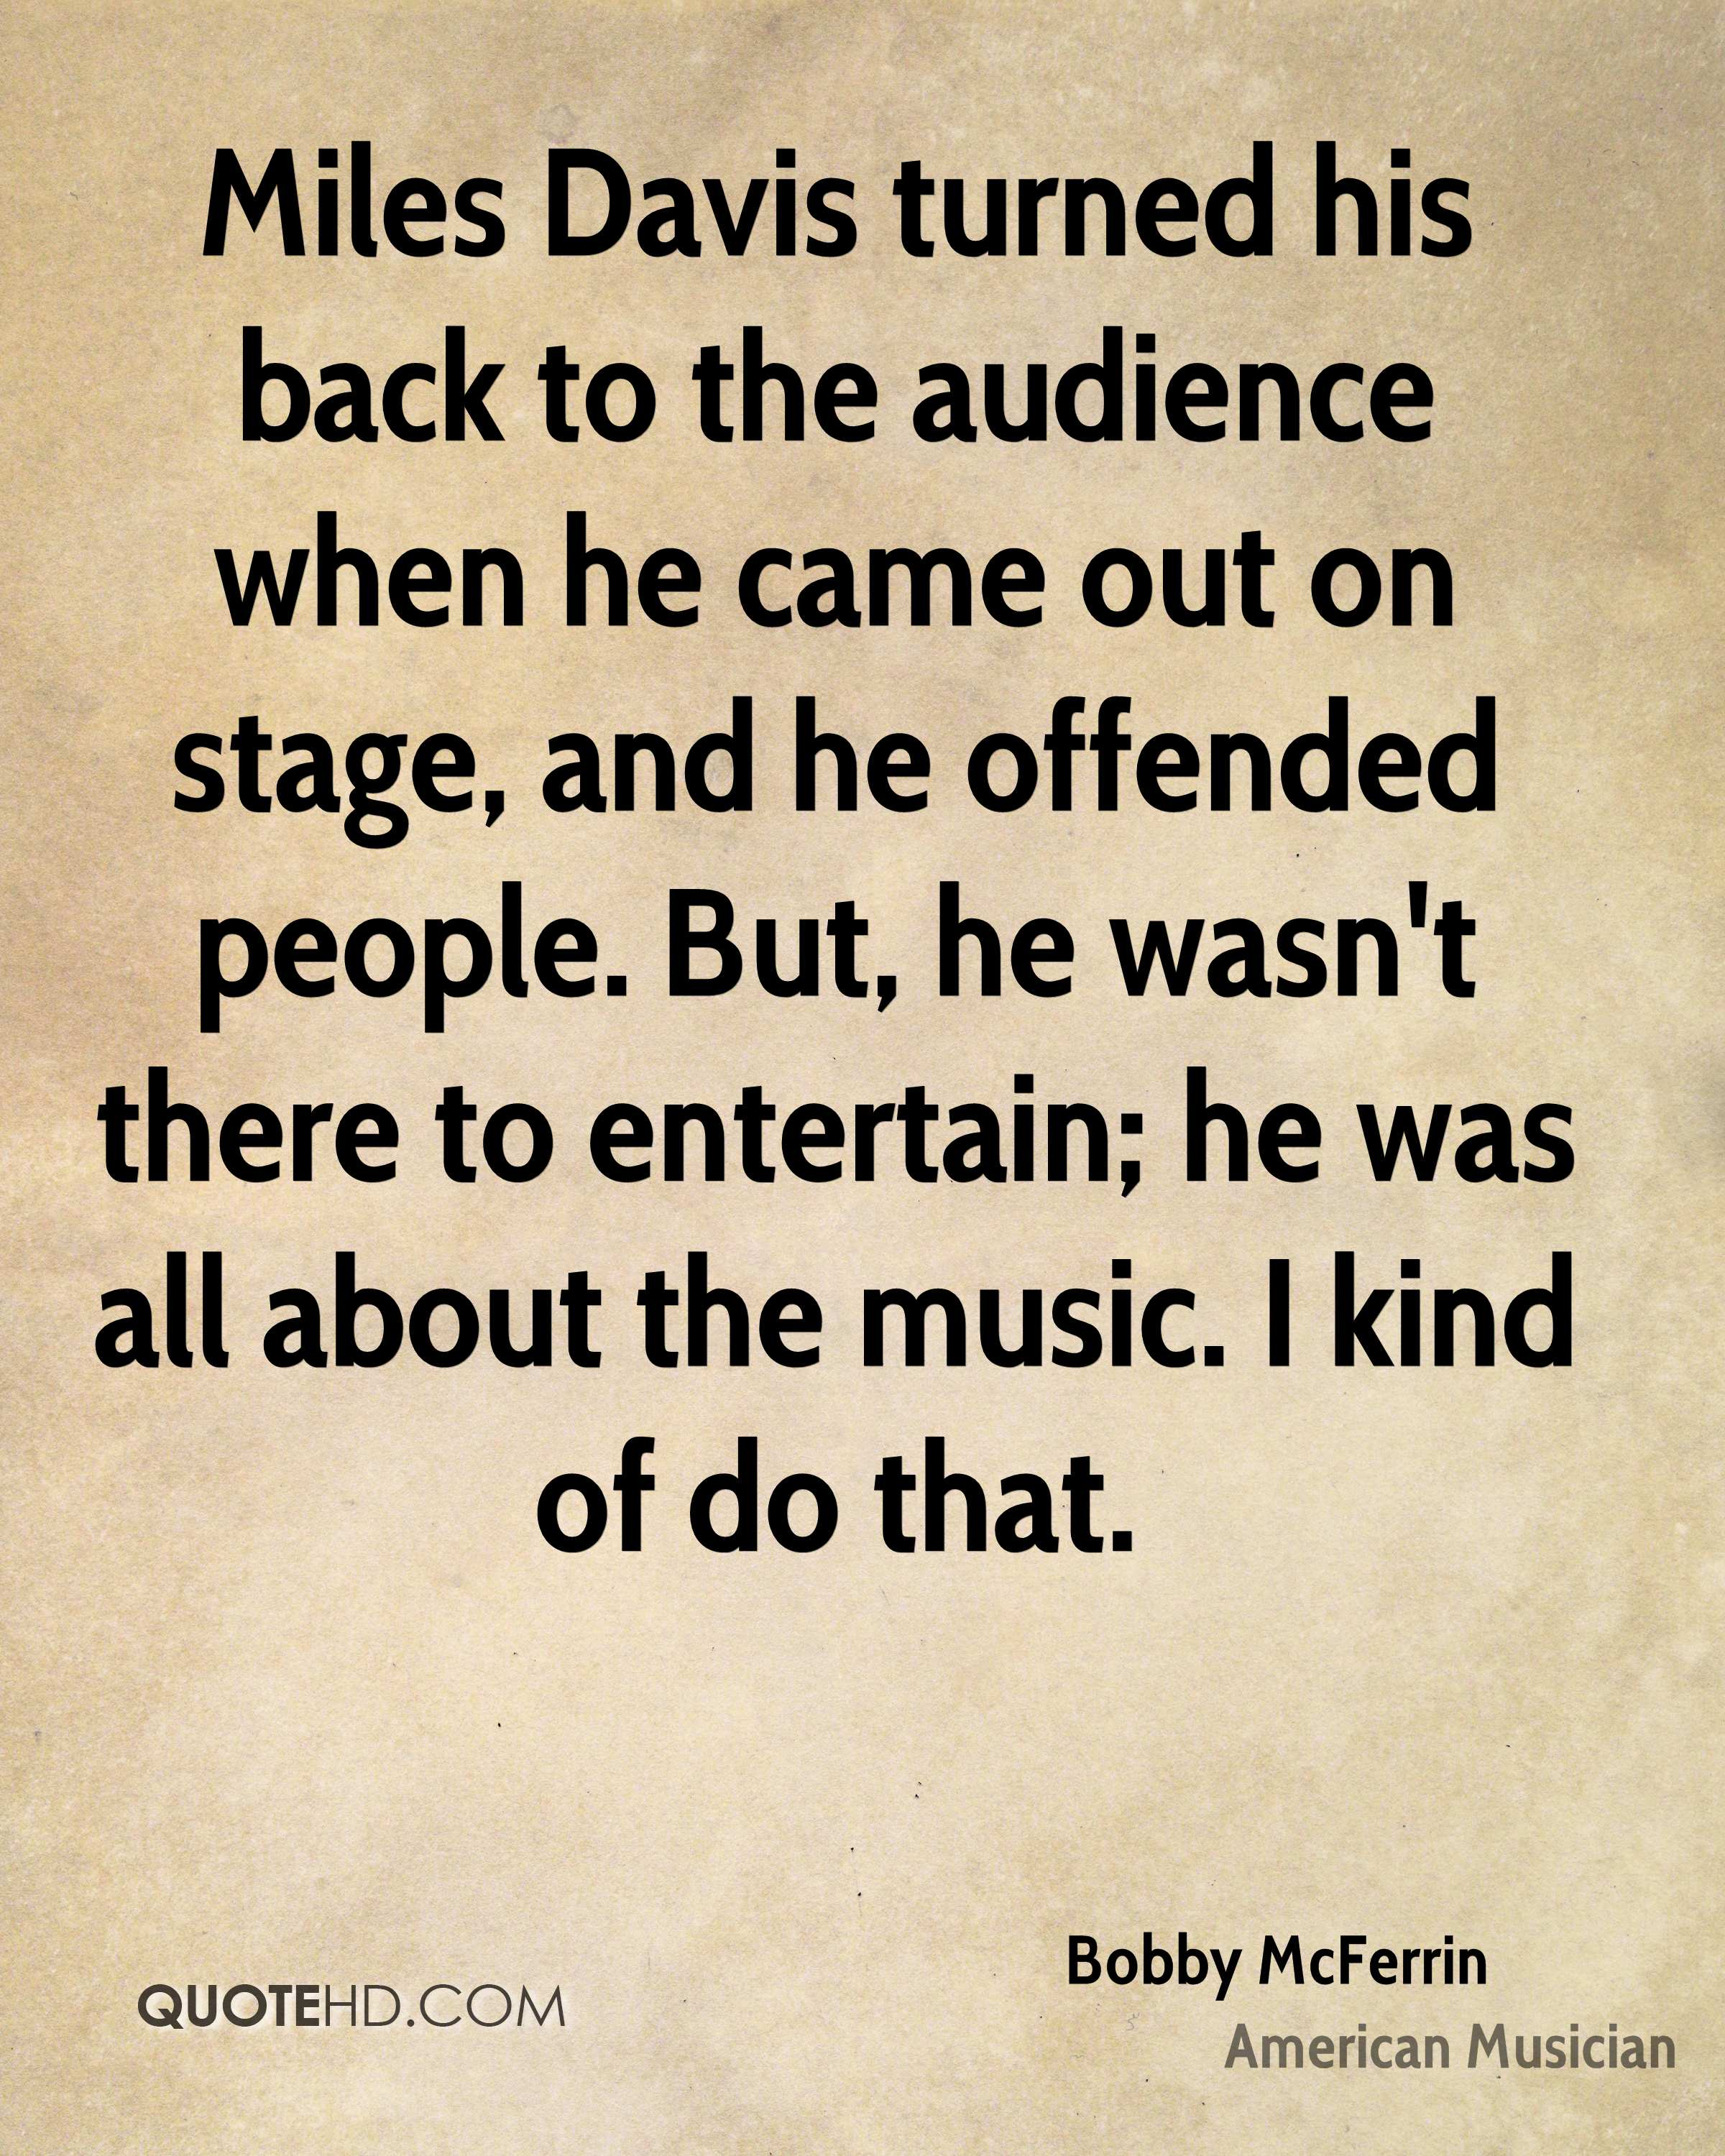 Miles Davis turned his back to the audience when he came out on stage, and he offended people. But, he wasn't there to entertain; he was all about the music. I kind of do that.